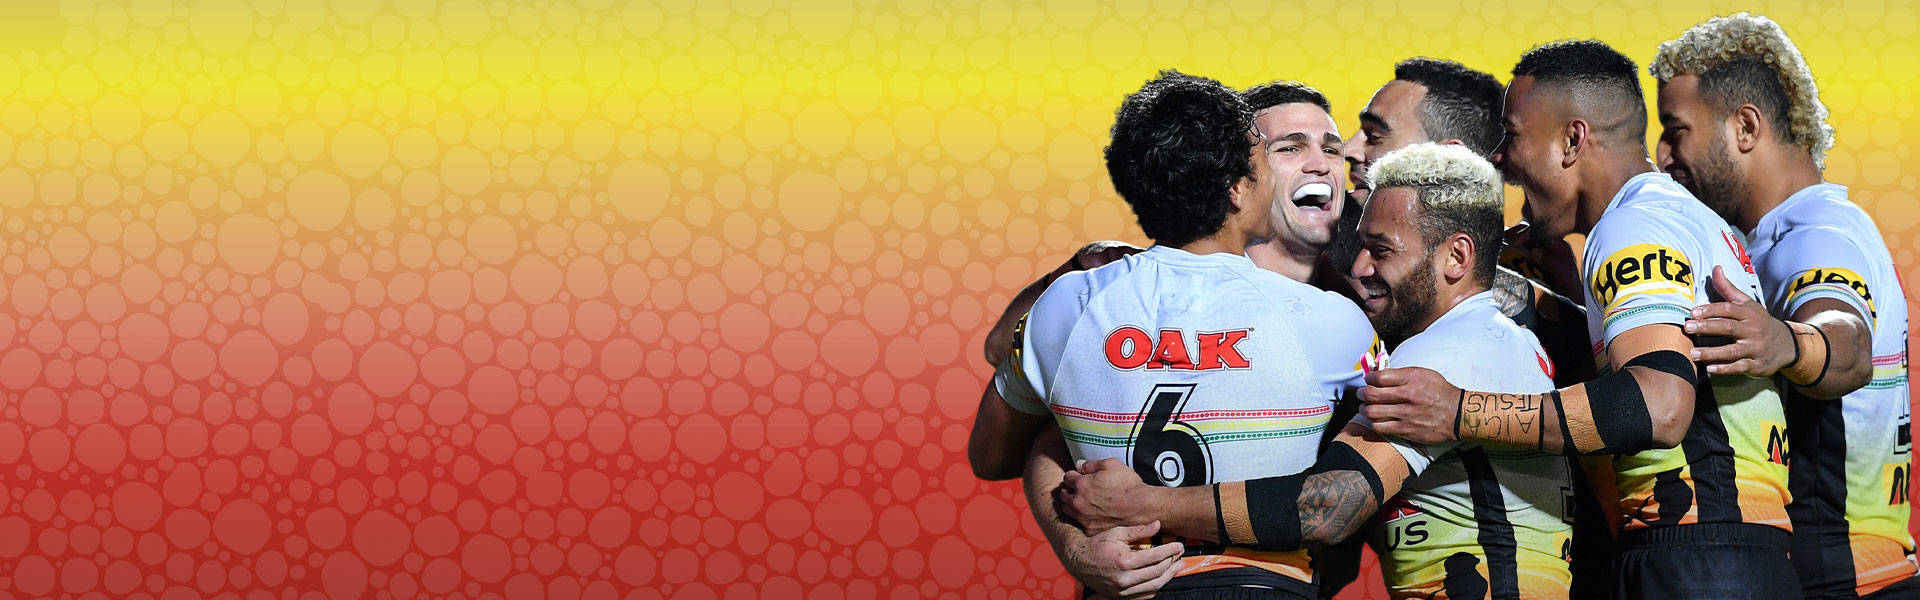 Panthers Indigenous Jersey Auction